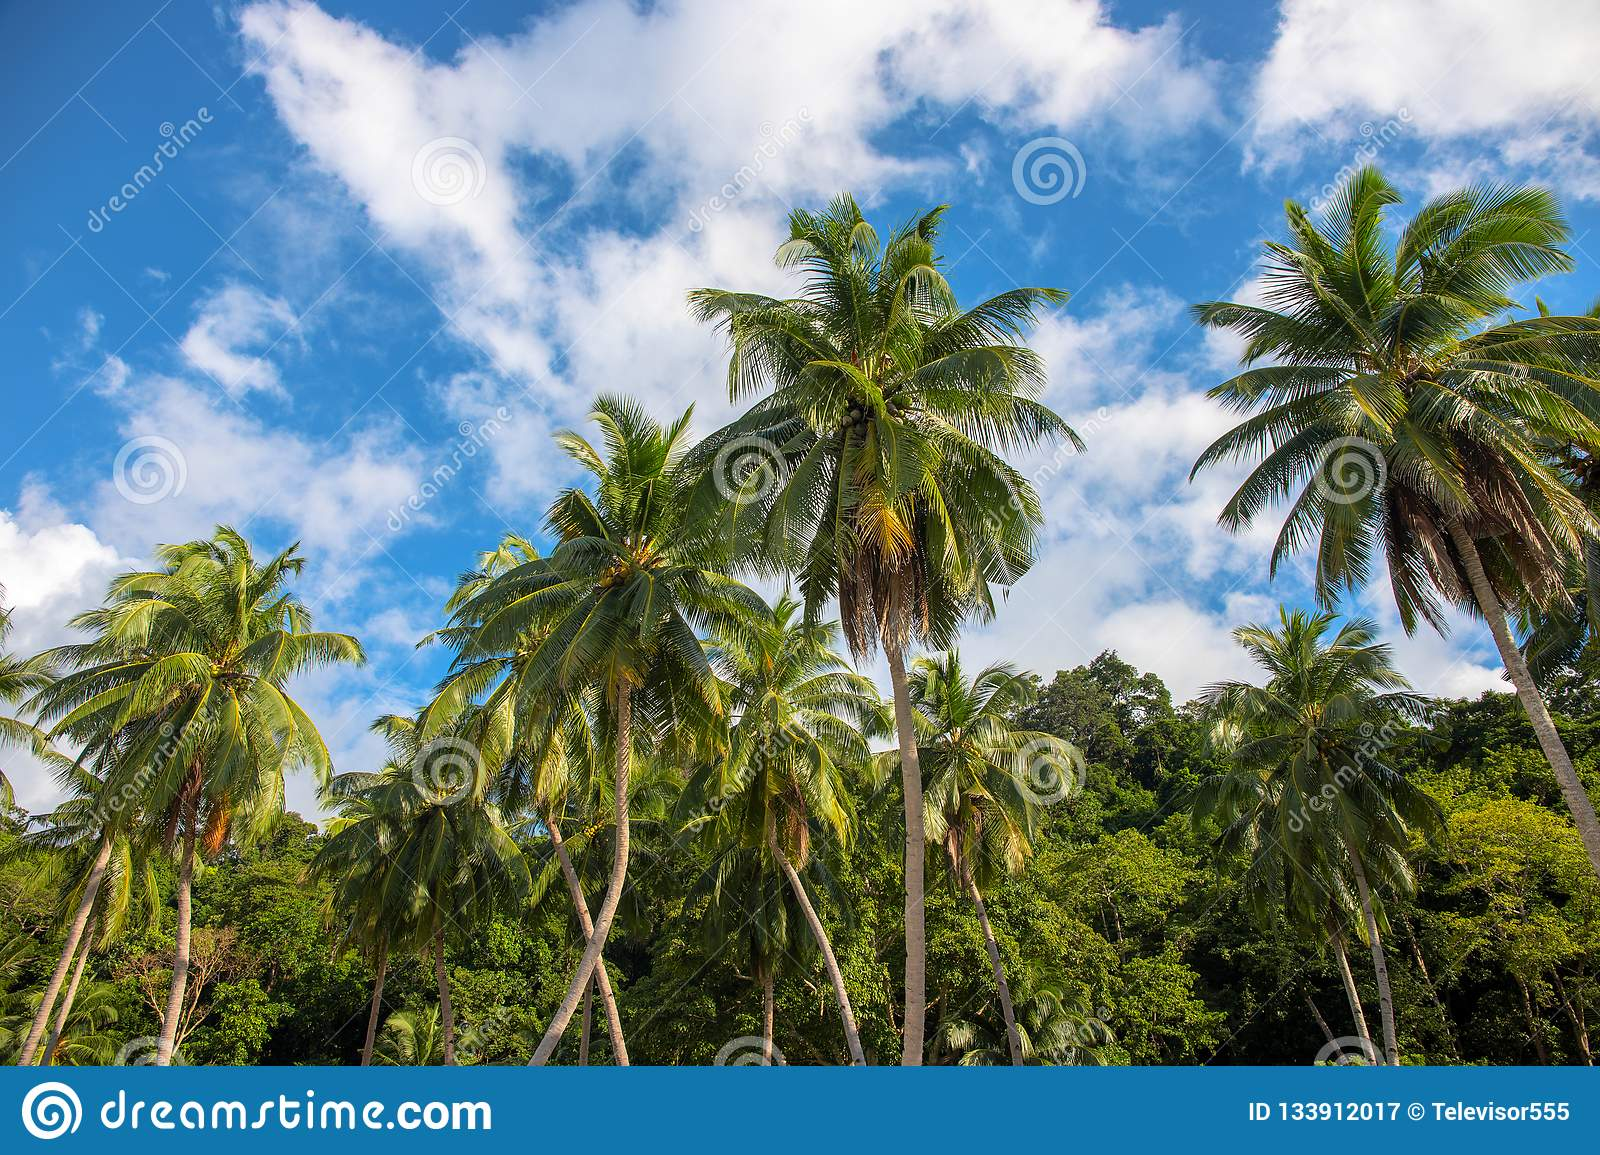 SUNNY BEACH TROPICAL PARADISE PALM TREES WALL POSTER ART PICTURE PRINT LARGE